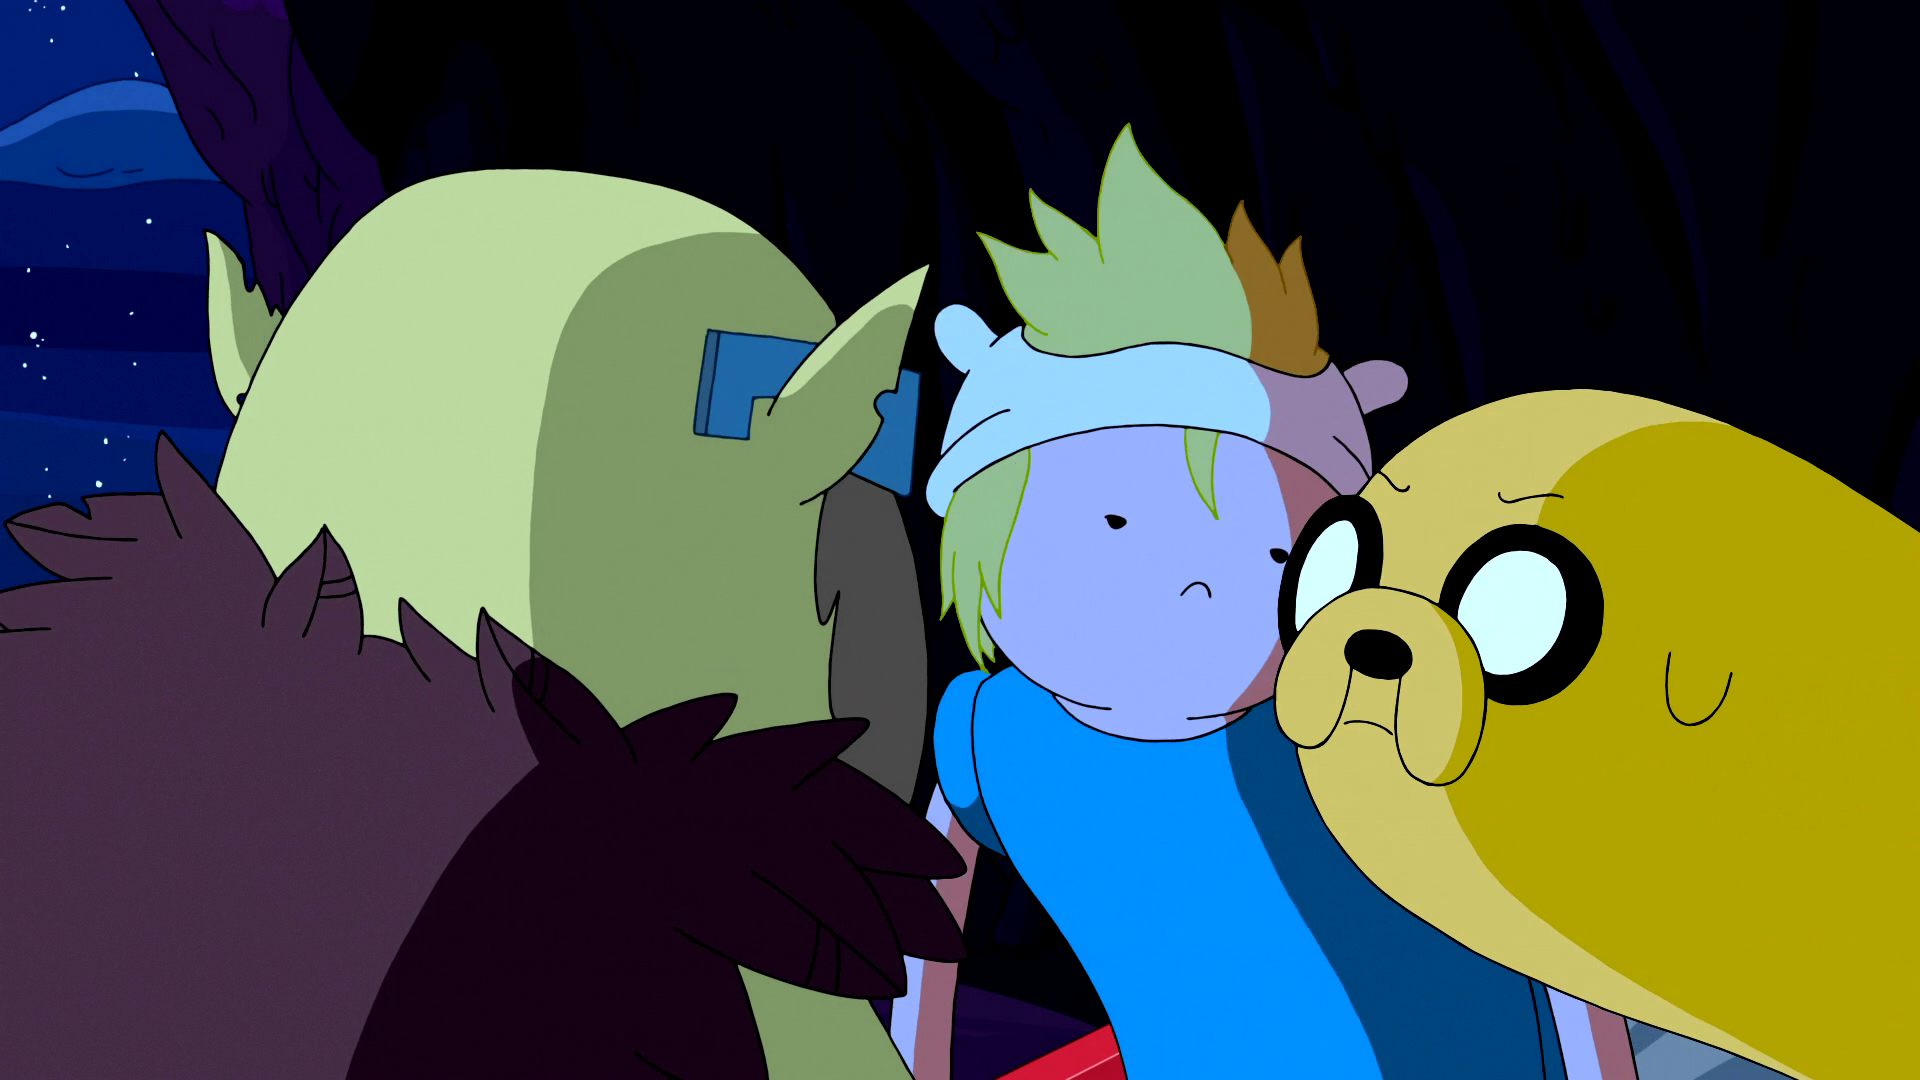 S5e13 Finn and Jake with Xergiok